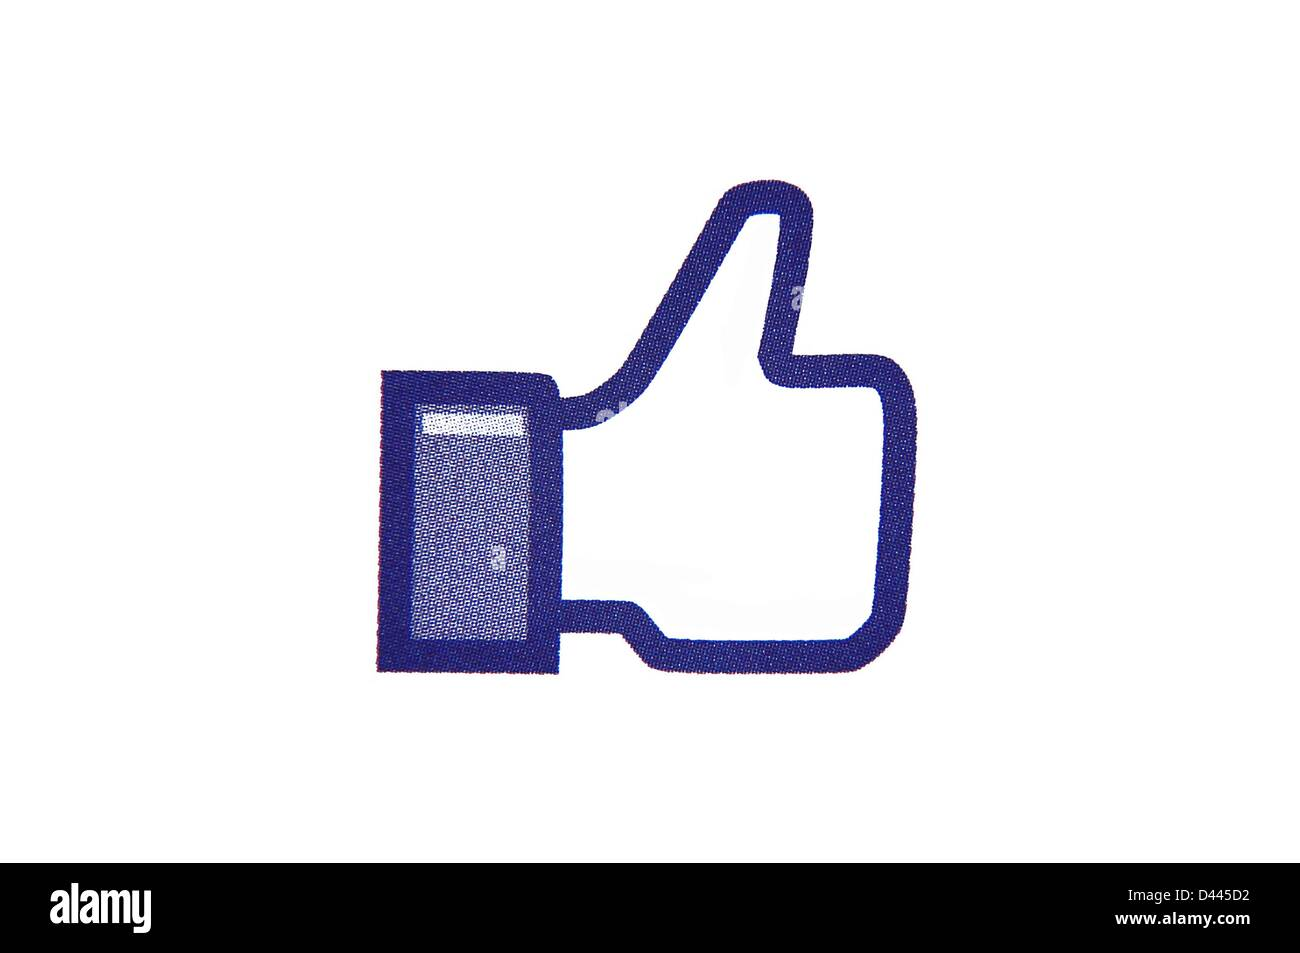 Illustration - The 'Like' button of the social networking service Facebook on 8 July 2011. Source: Berliner - Stock Image